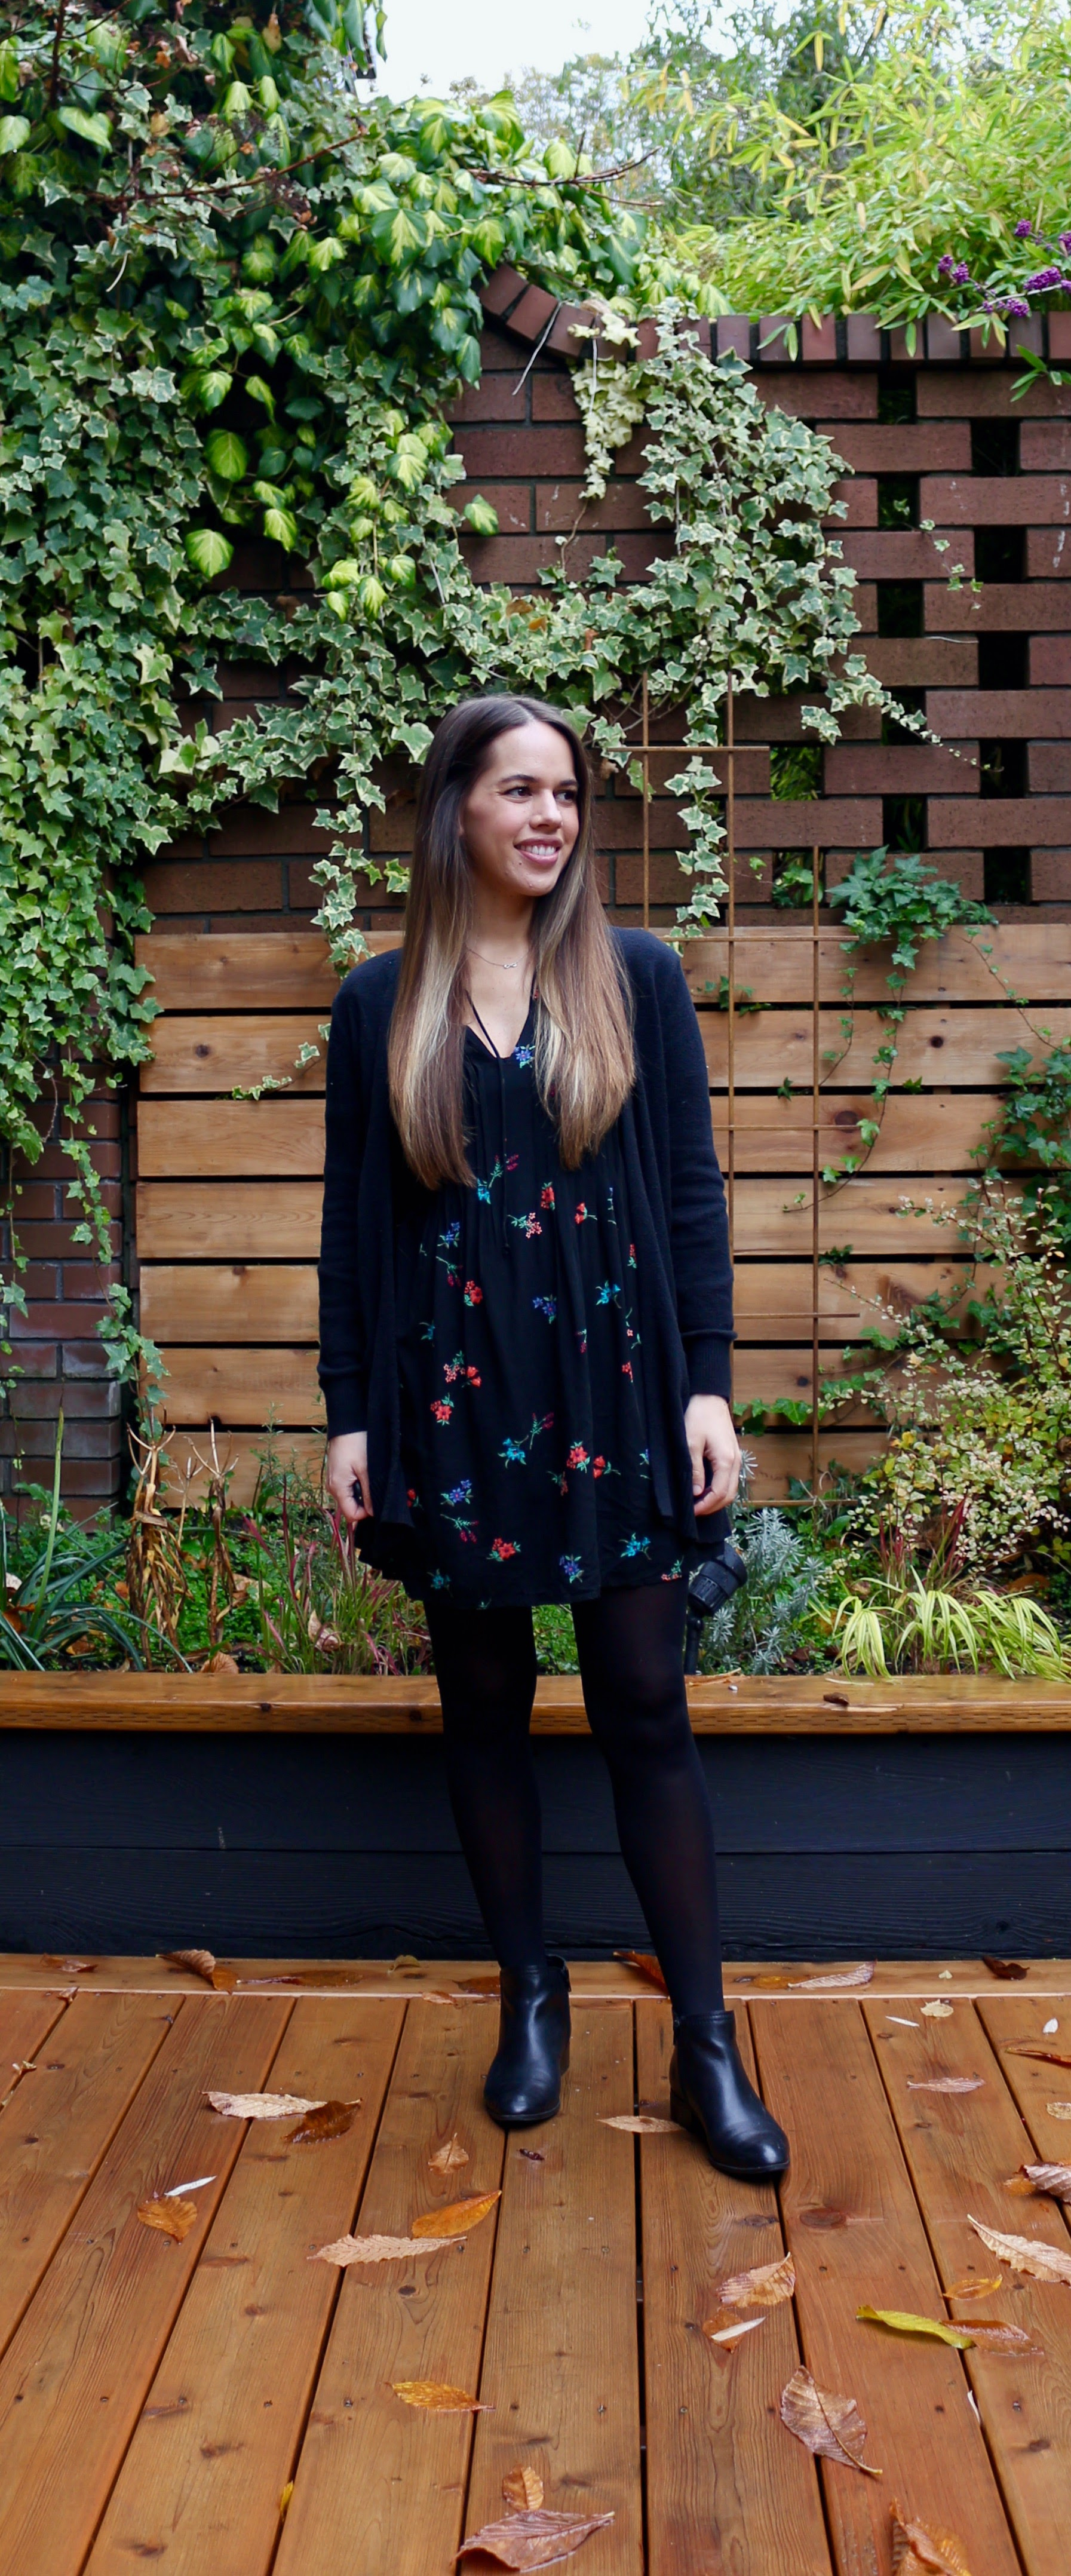 Jules in Flats - Black Floral Swing Dress with Booties (Business Casual Workwear on a Budget)